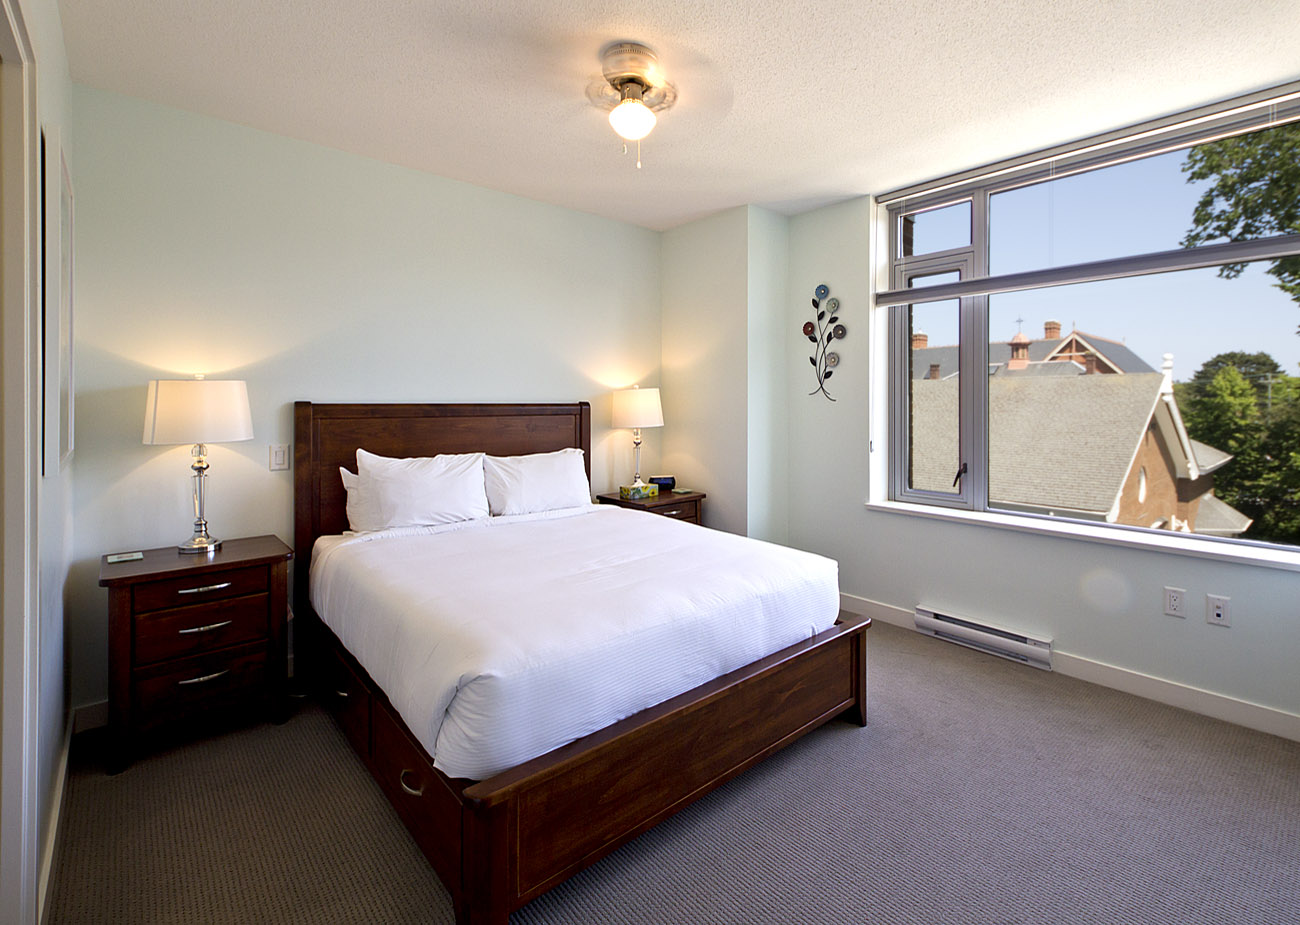 furnished bedroom with queen bed and large window